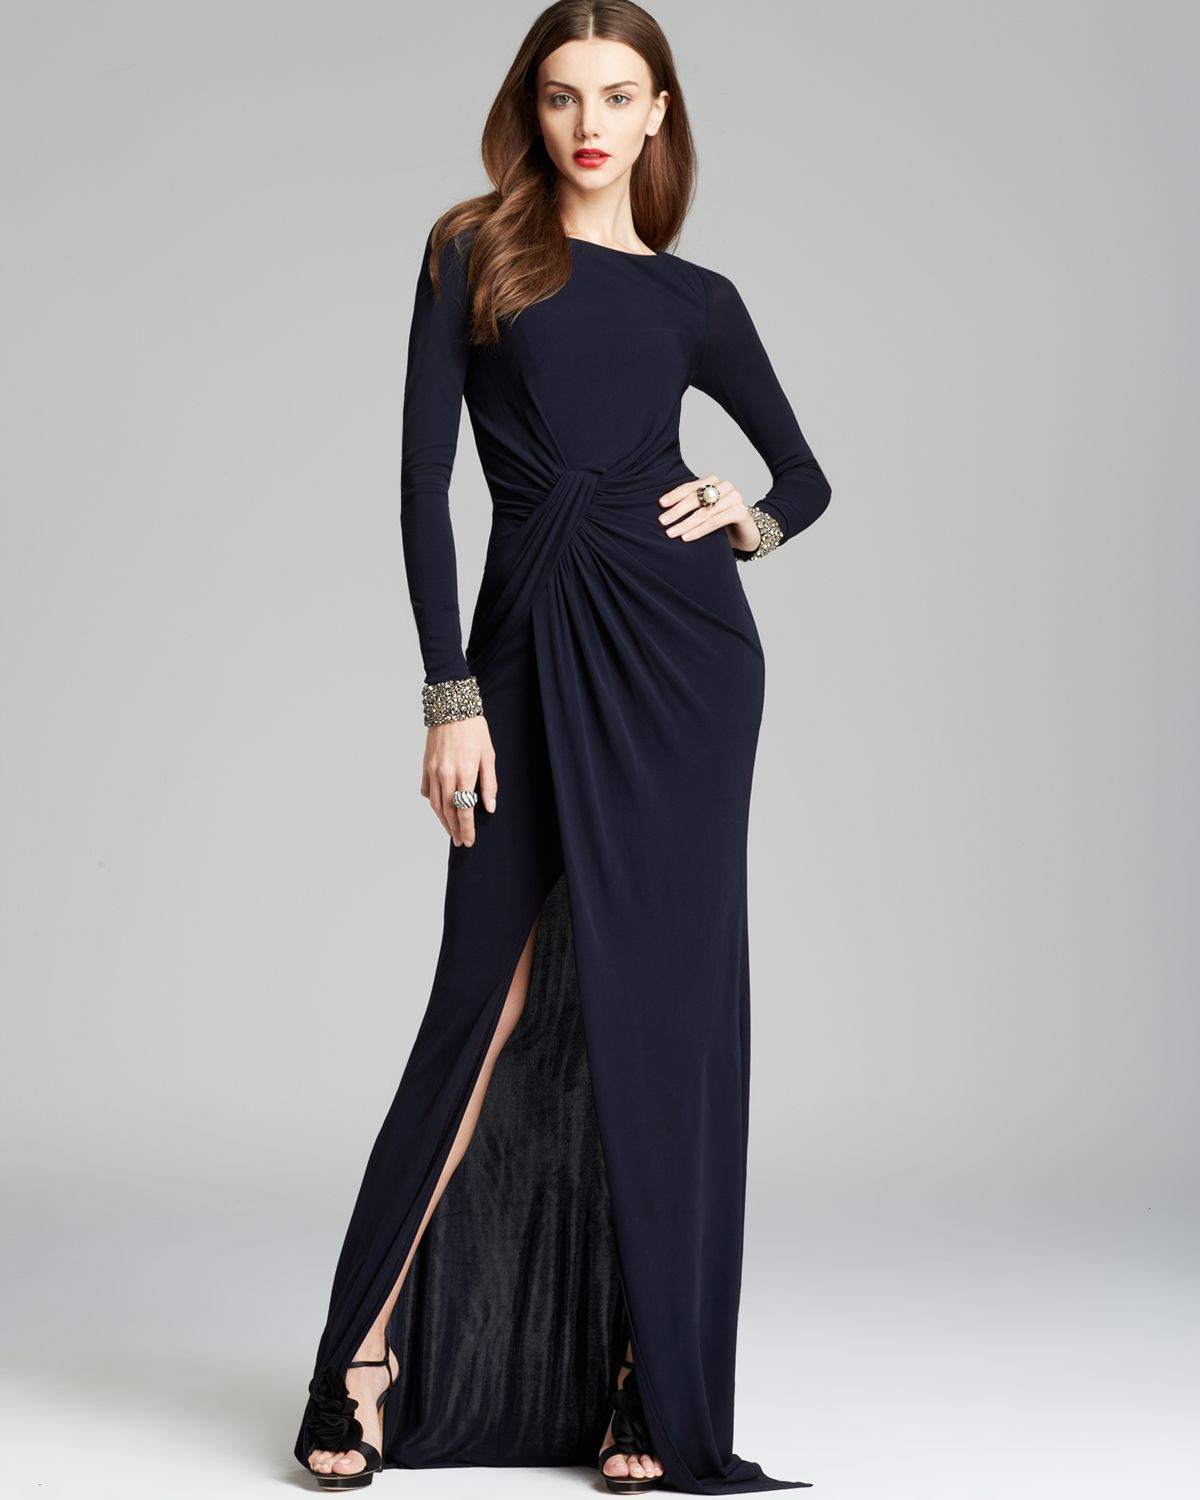 Lyst - David Meister Jeweled Cuff Draped Jersey Gown Cutout Back in Blue